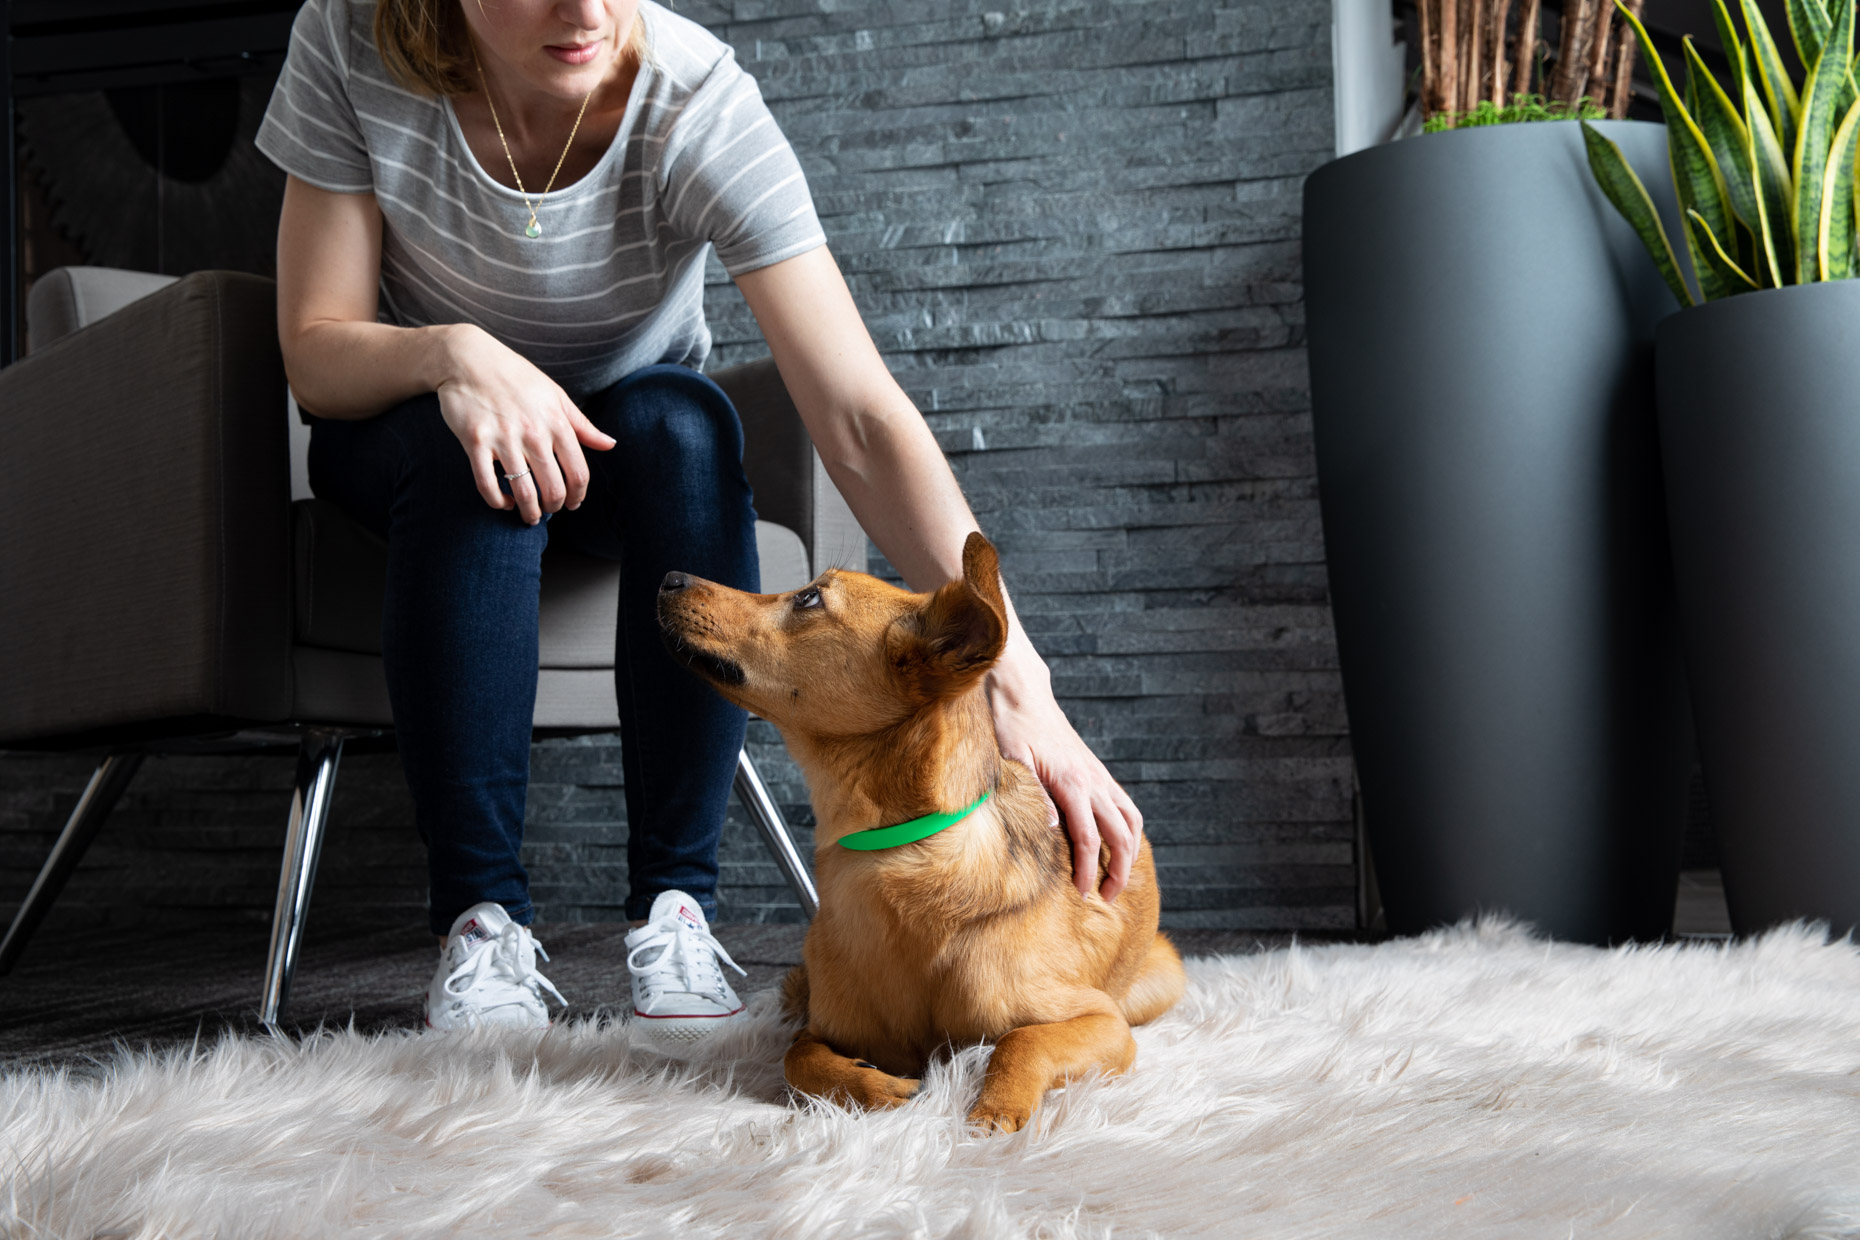 Pet Lifestyle Photography | Woman Pets Dog on Rug by Mark Rogers